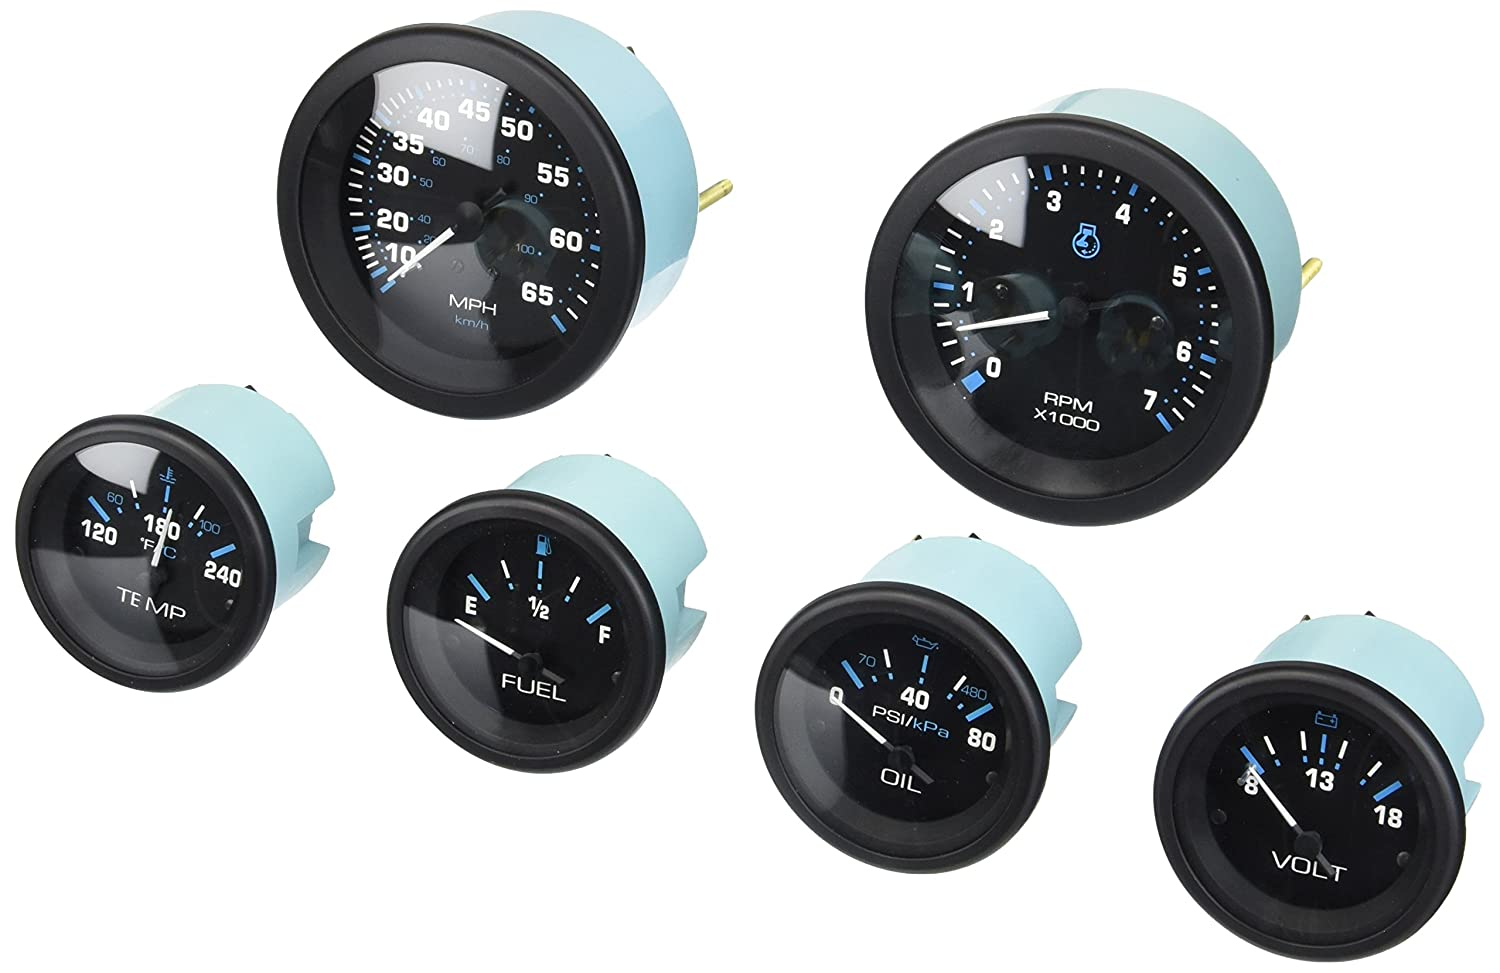 Speed Engine Oil Pressure Sierra International Eclipse 6 Gauge Kit Includes Fuel Tach /& Water Temp Gauges